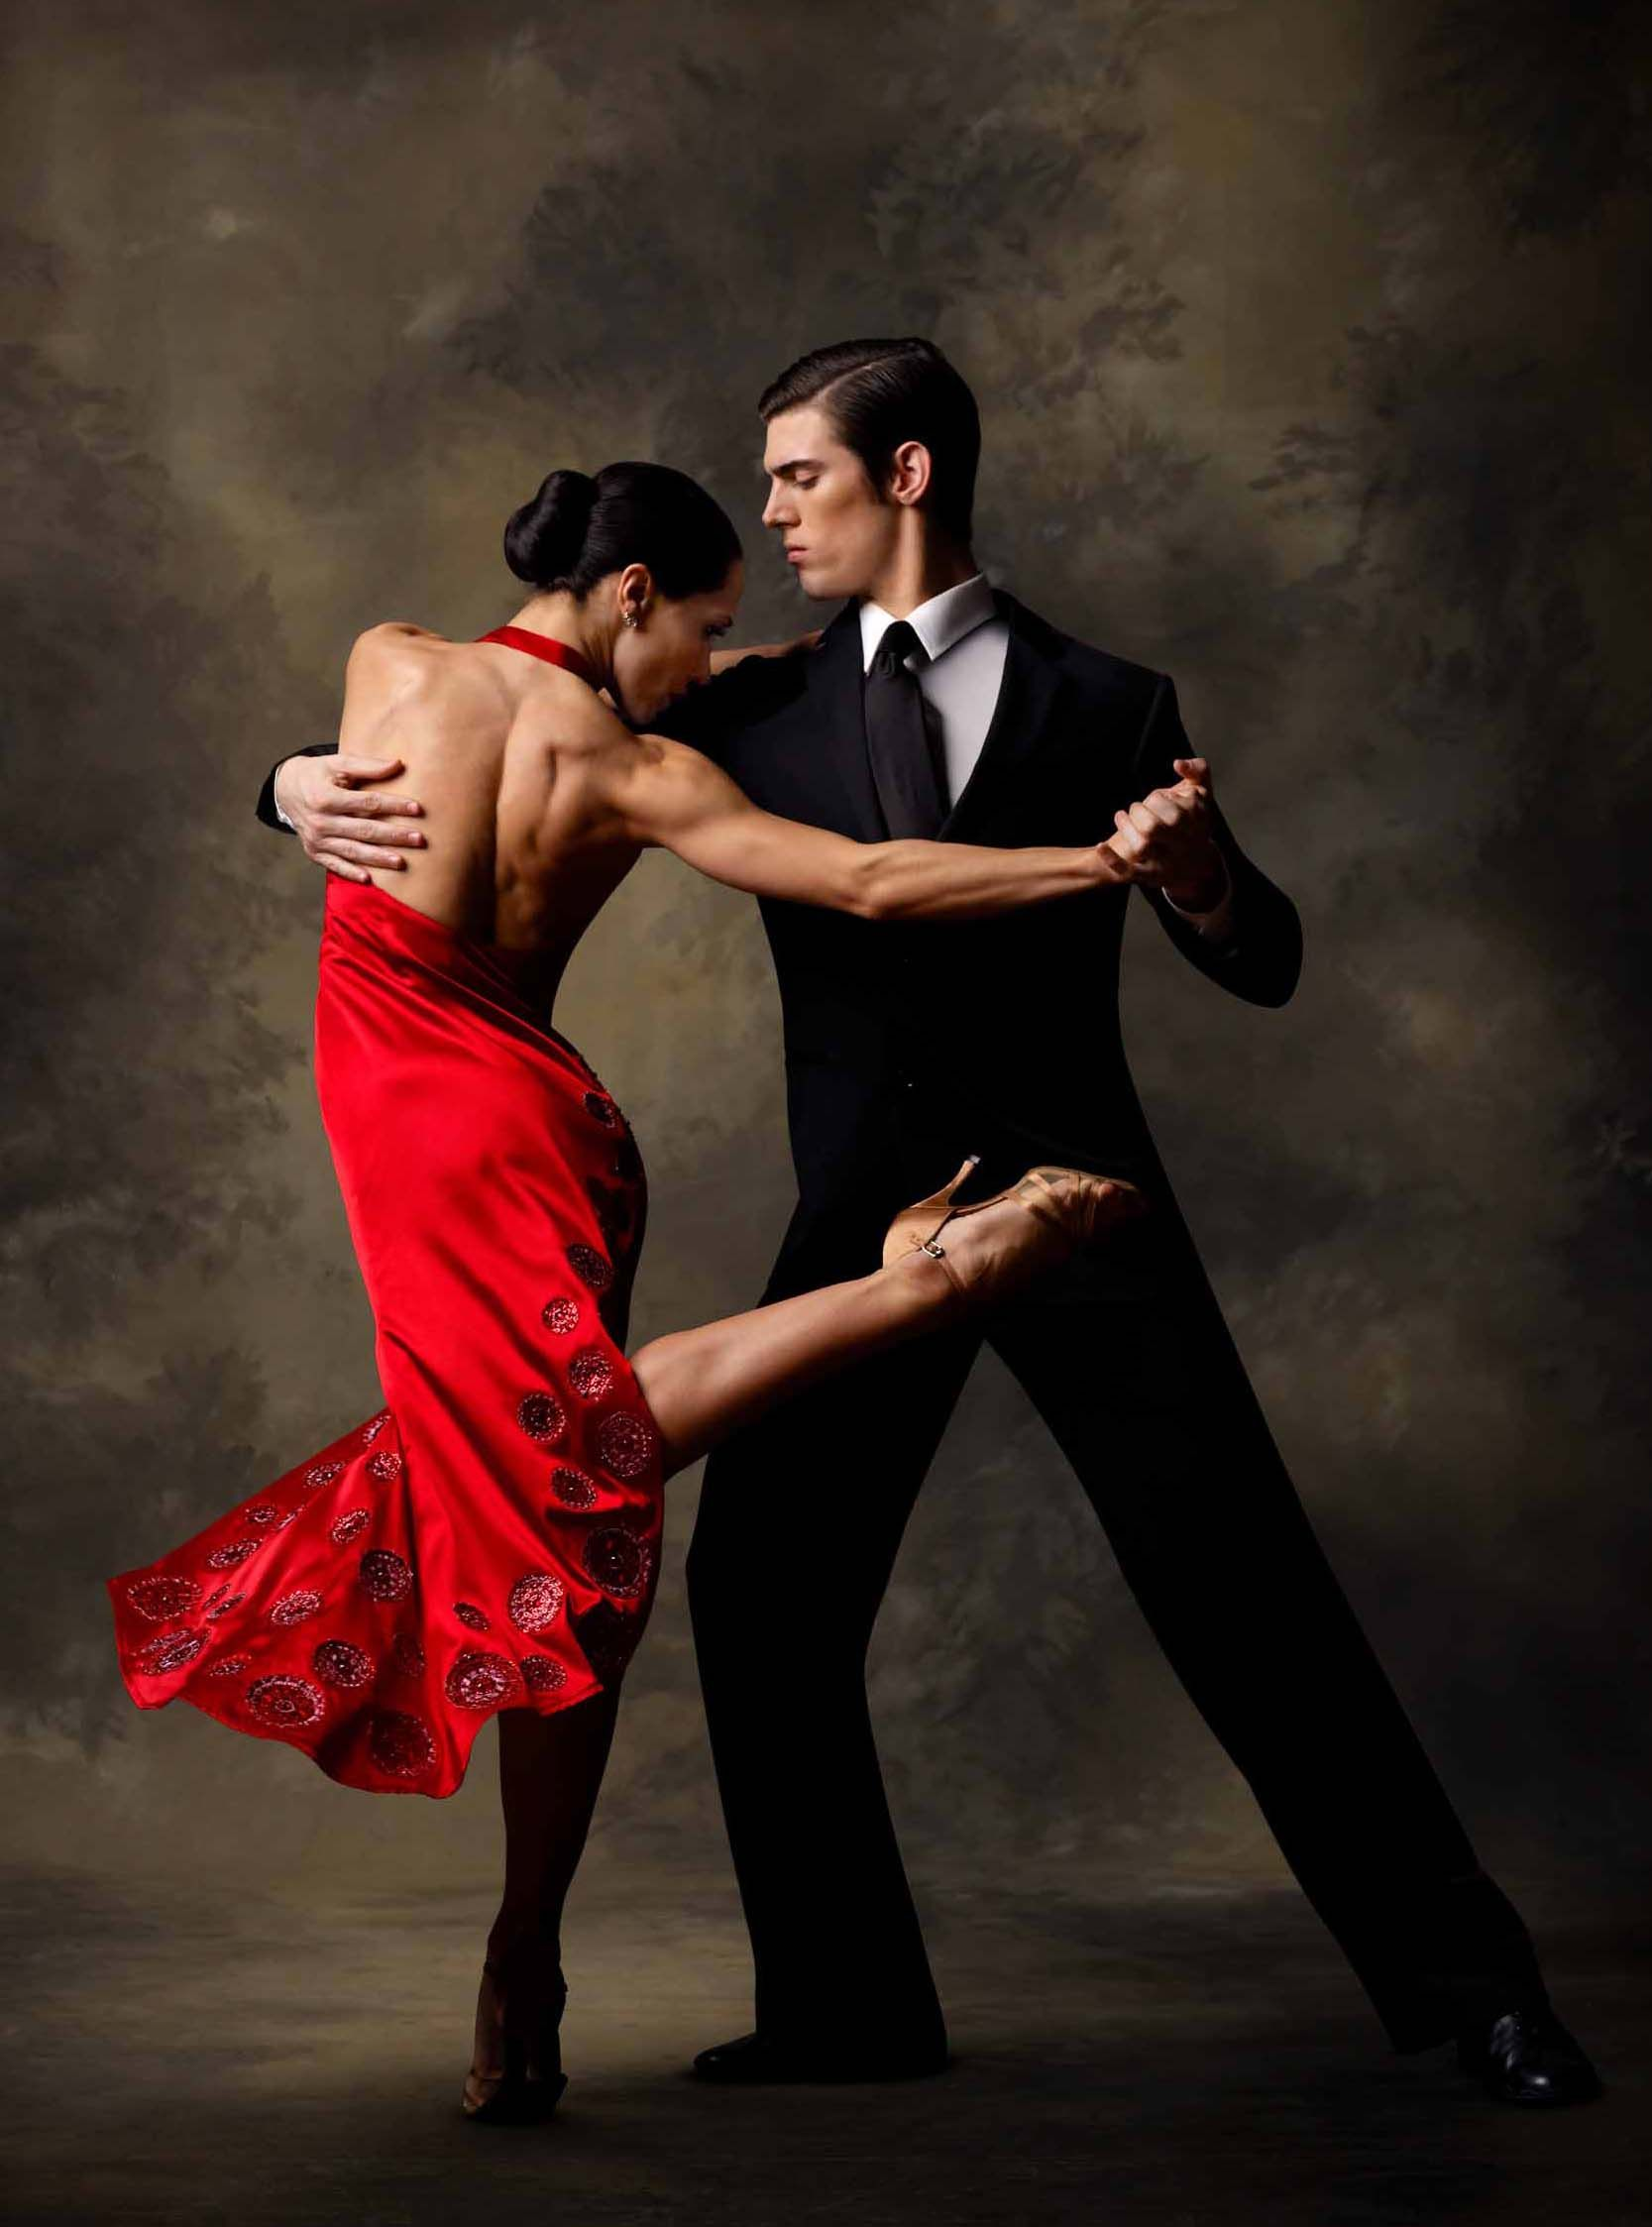 Free tango lesson at daley plaza dance photography